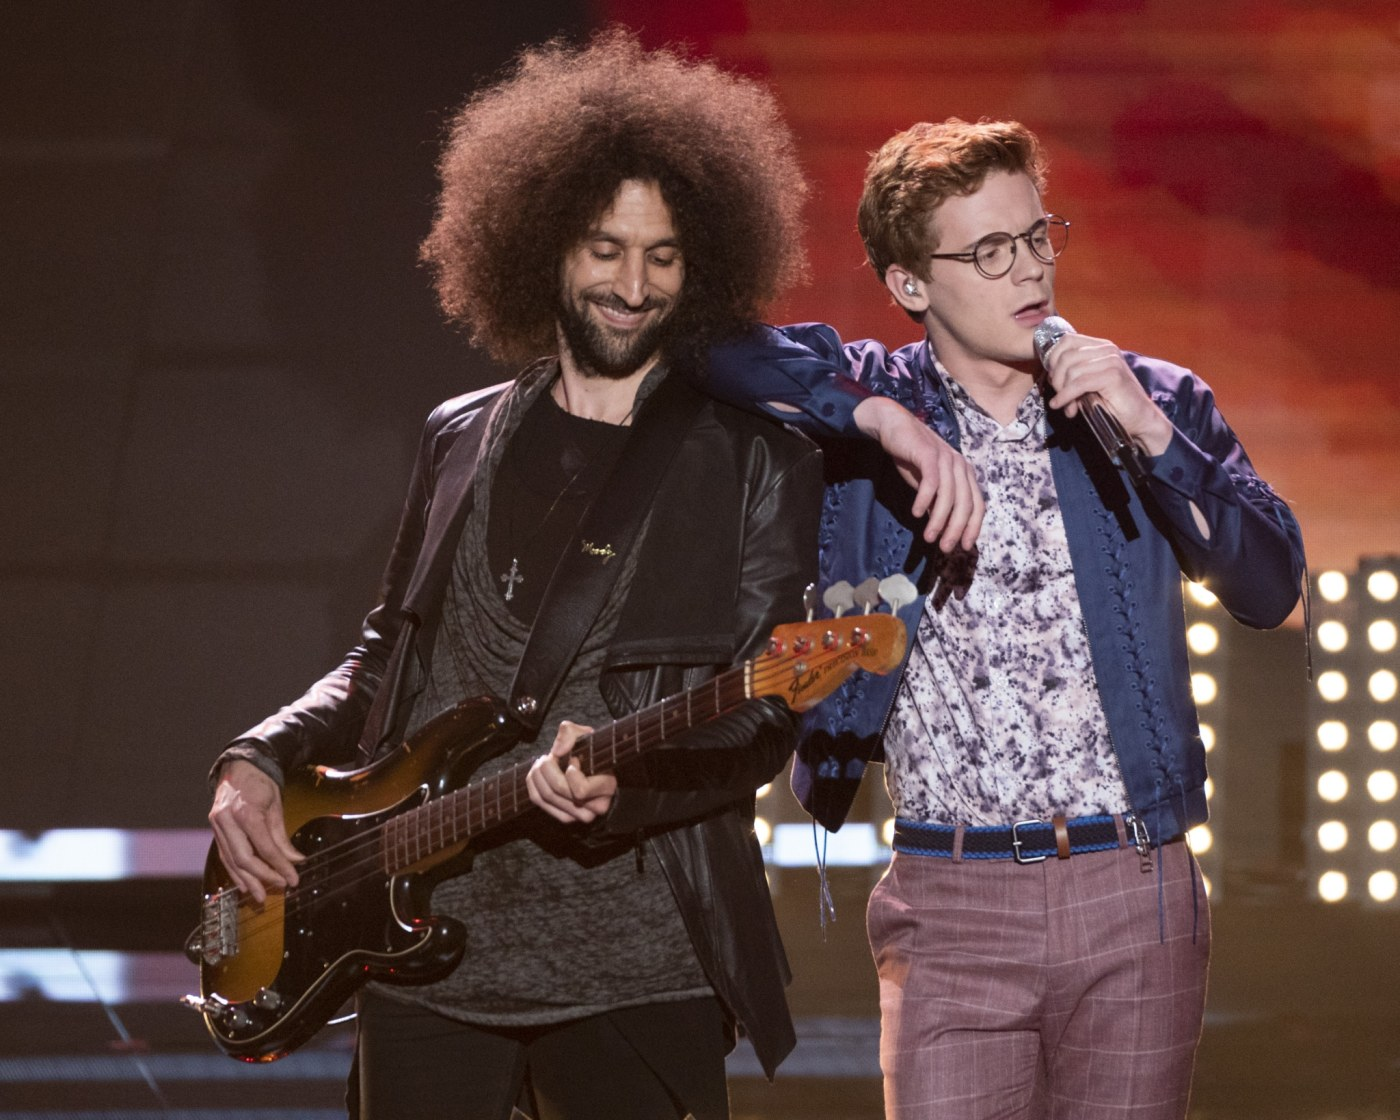 """Burroughs (pictured right) sang Queen's """"Crazy Little Thing Called Love"""" on Episode 15 of American Idol. (ABC/Eric McCandless)"""